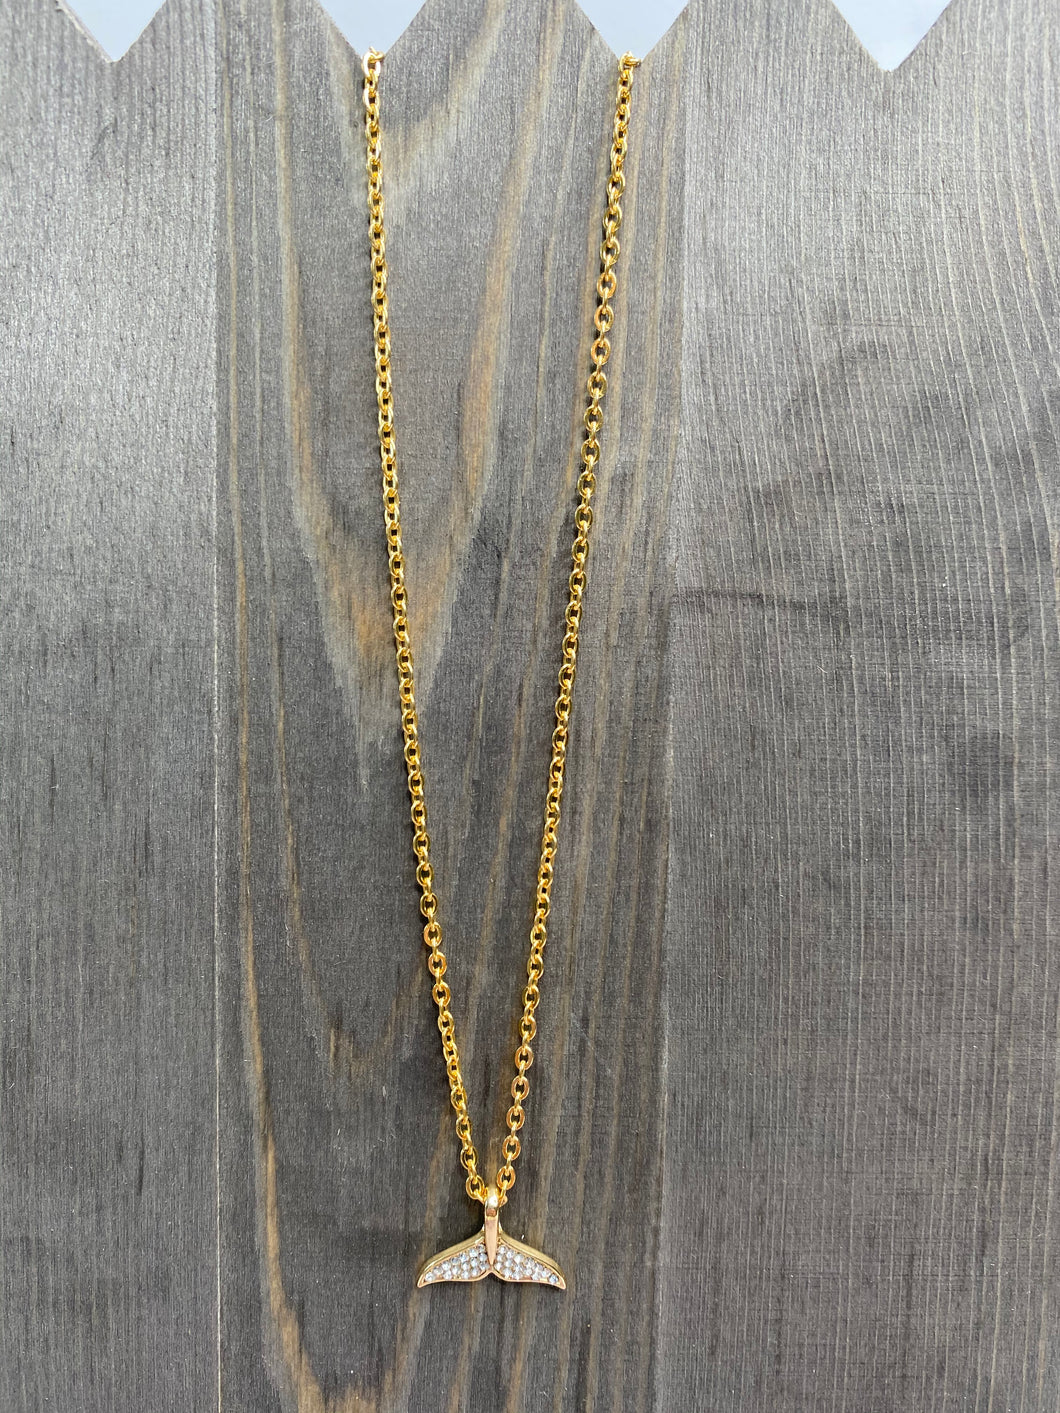 Rhinestone Gold Whales Tail Necklace